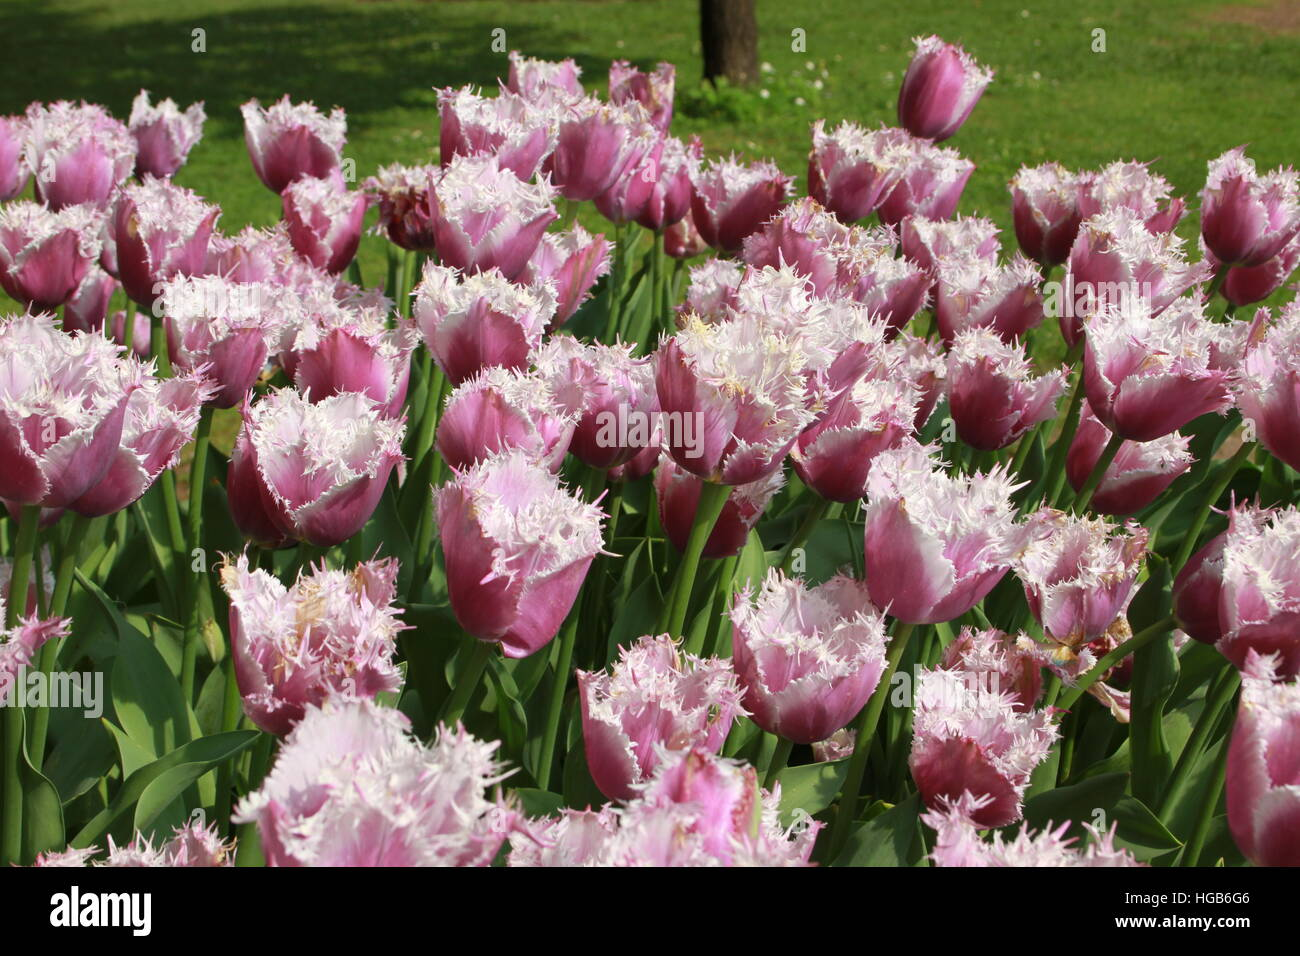 Tulips in lila pink and white with some grass in the background - Stock Image